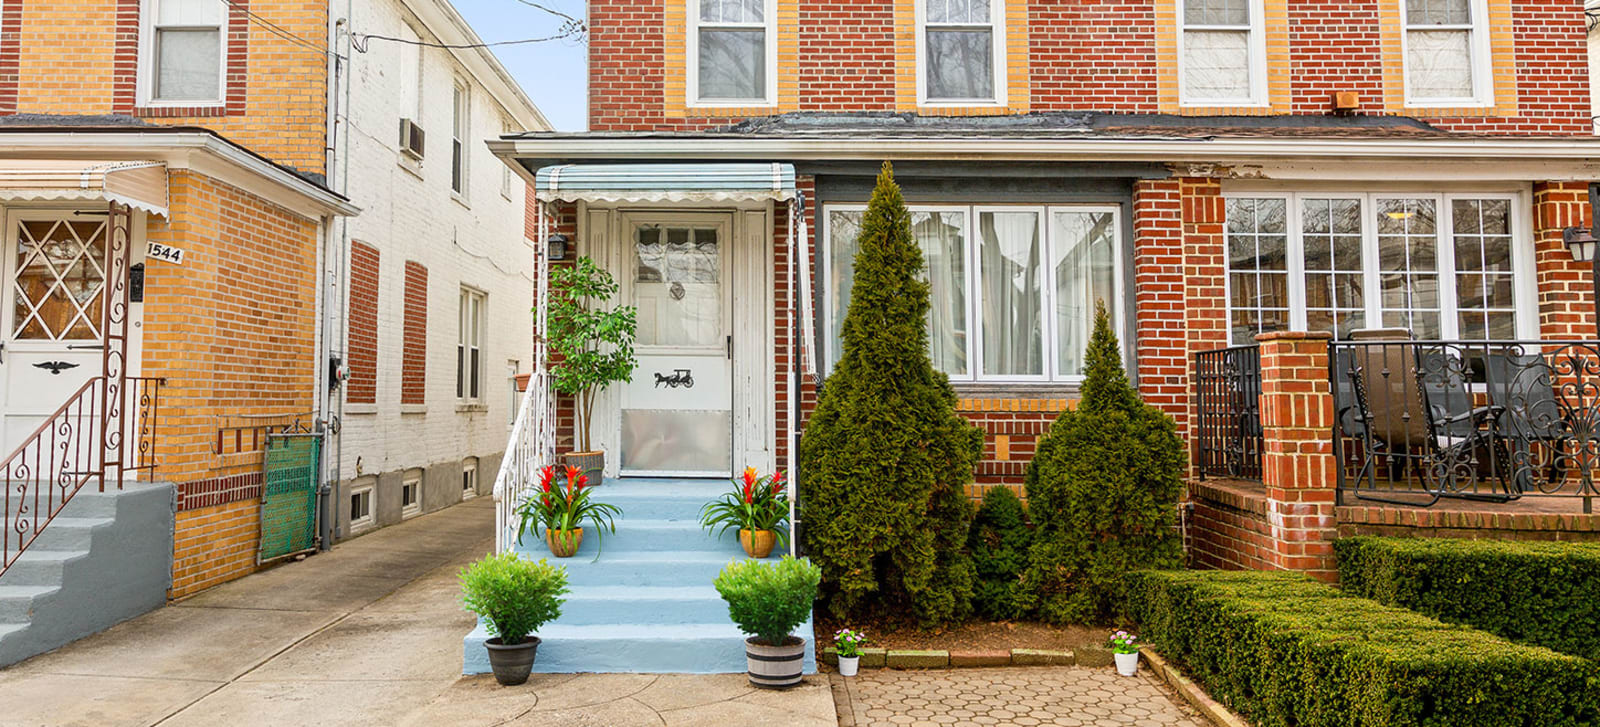 Find Luxury Real Estate in Marine Park | The Corcoran Group